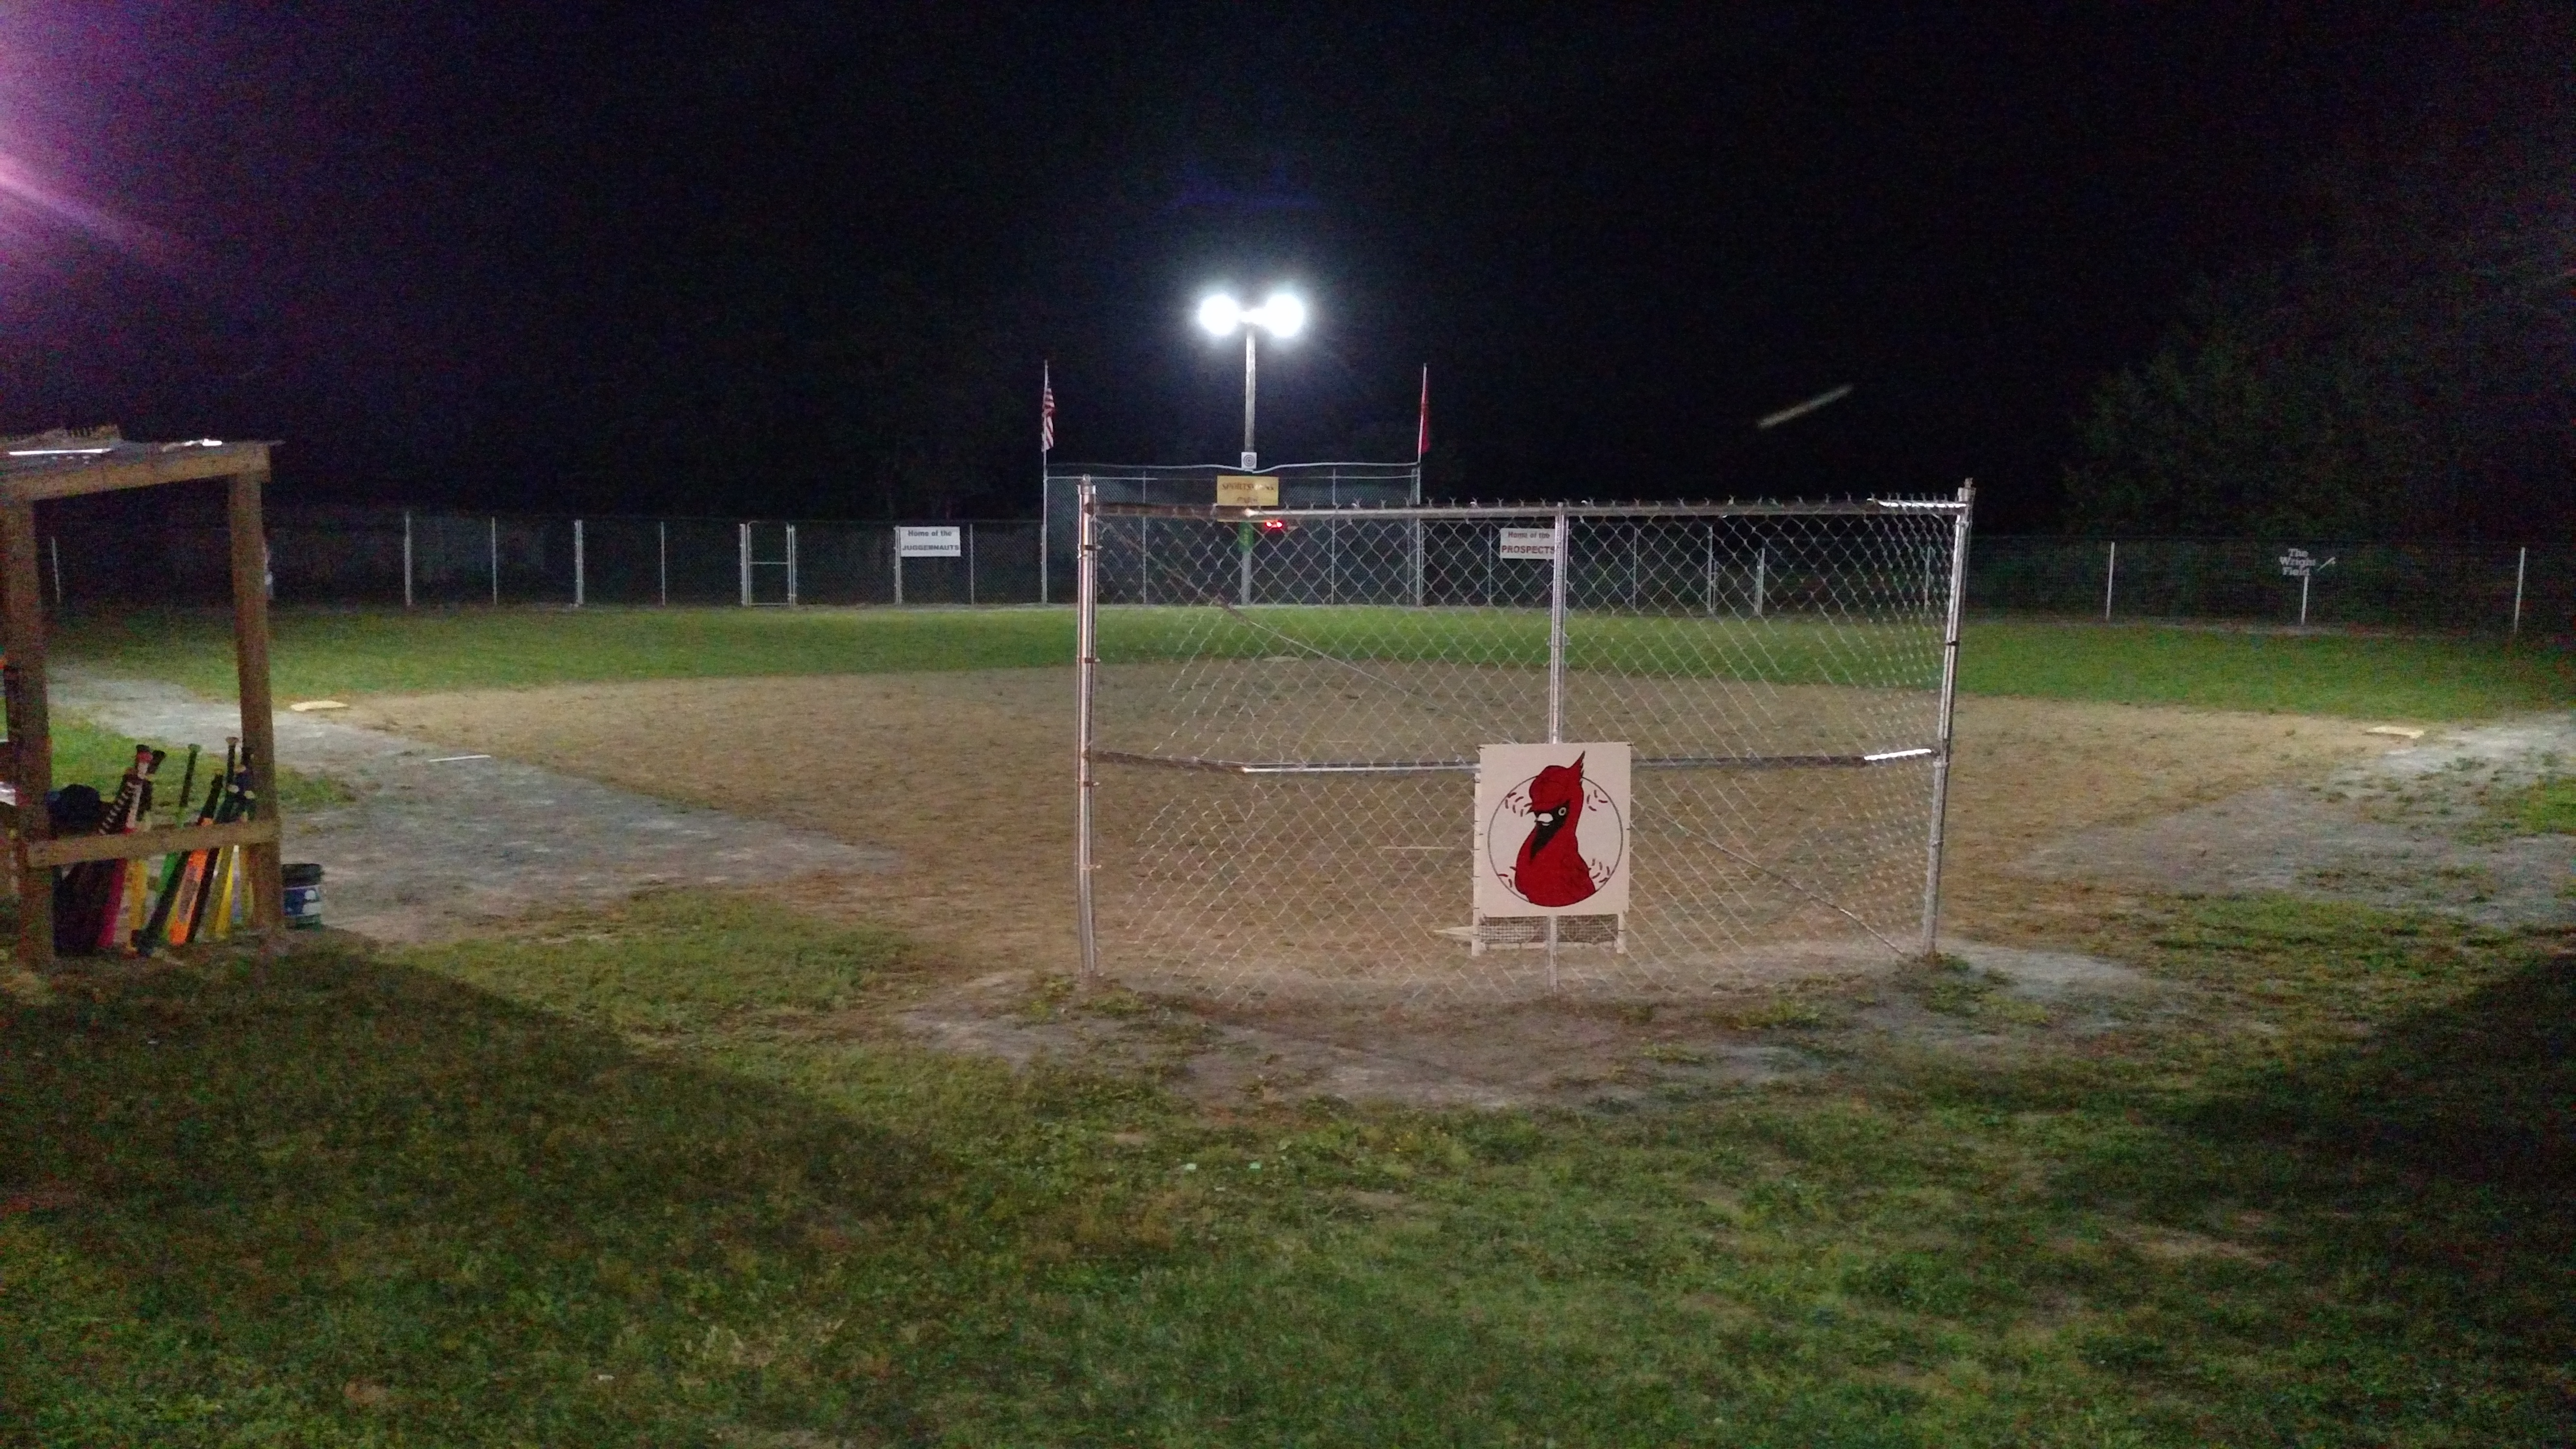 sportsmans park wiffle ball field of the month excursions